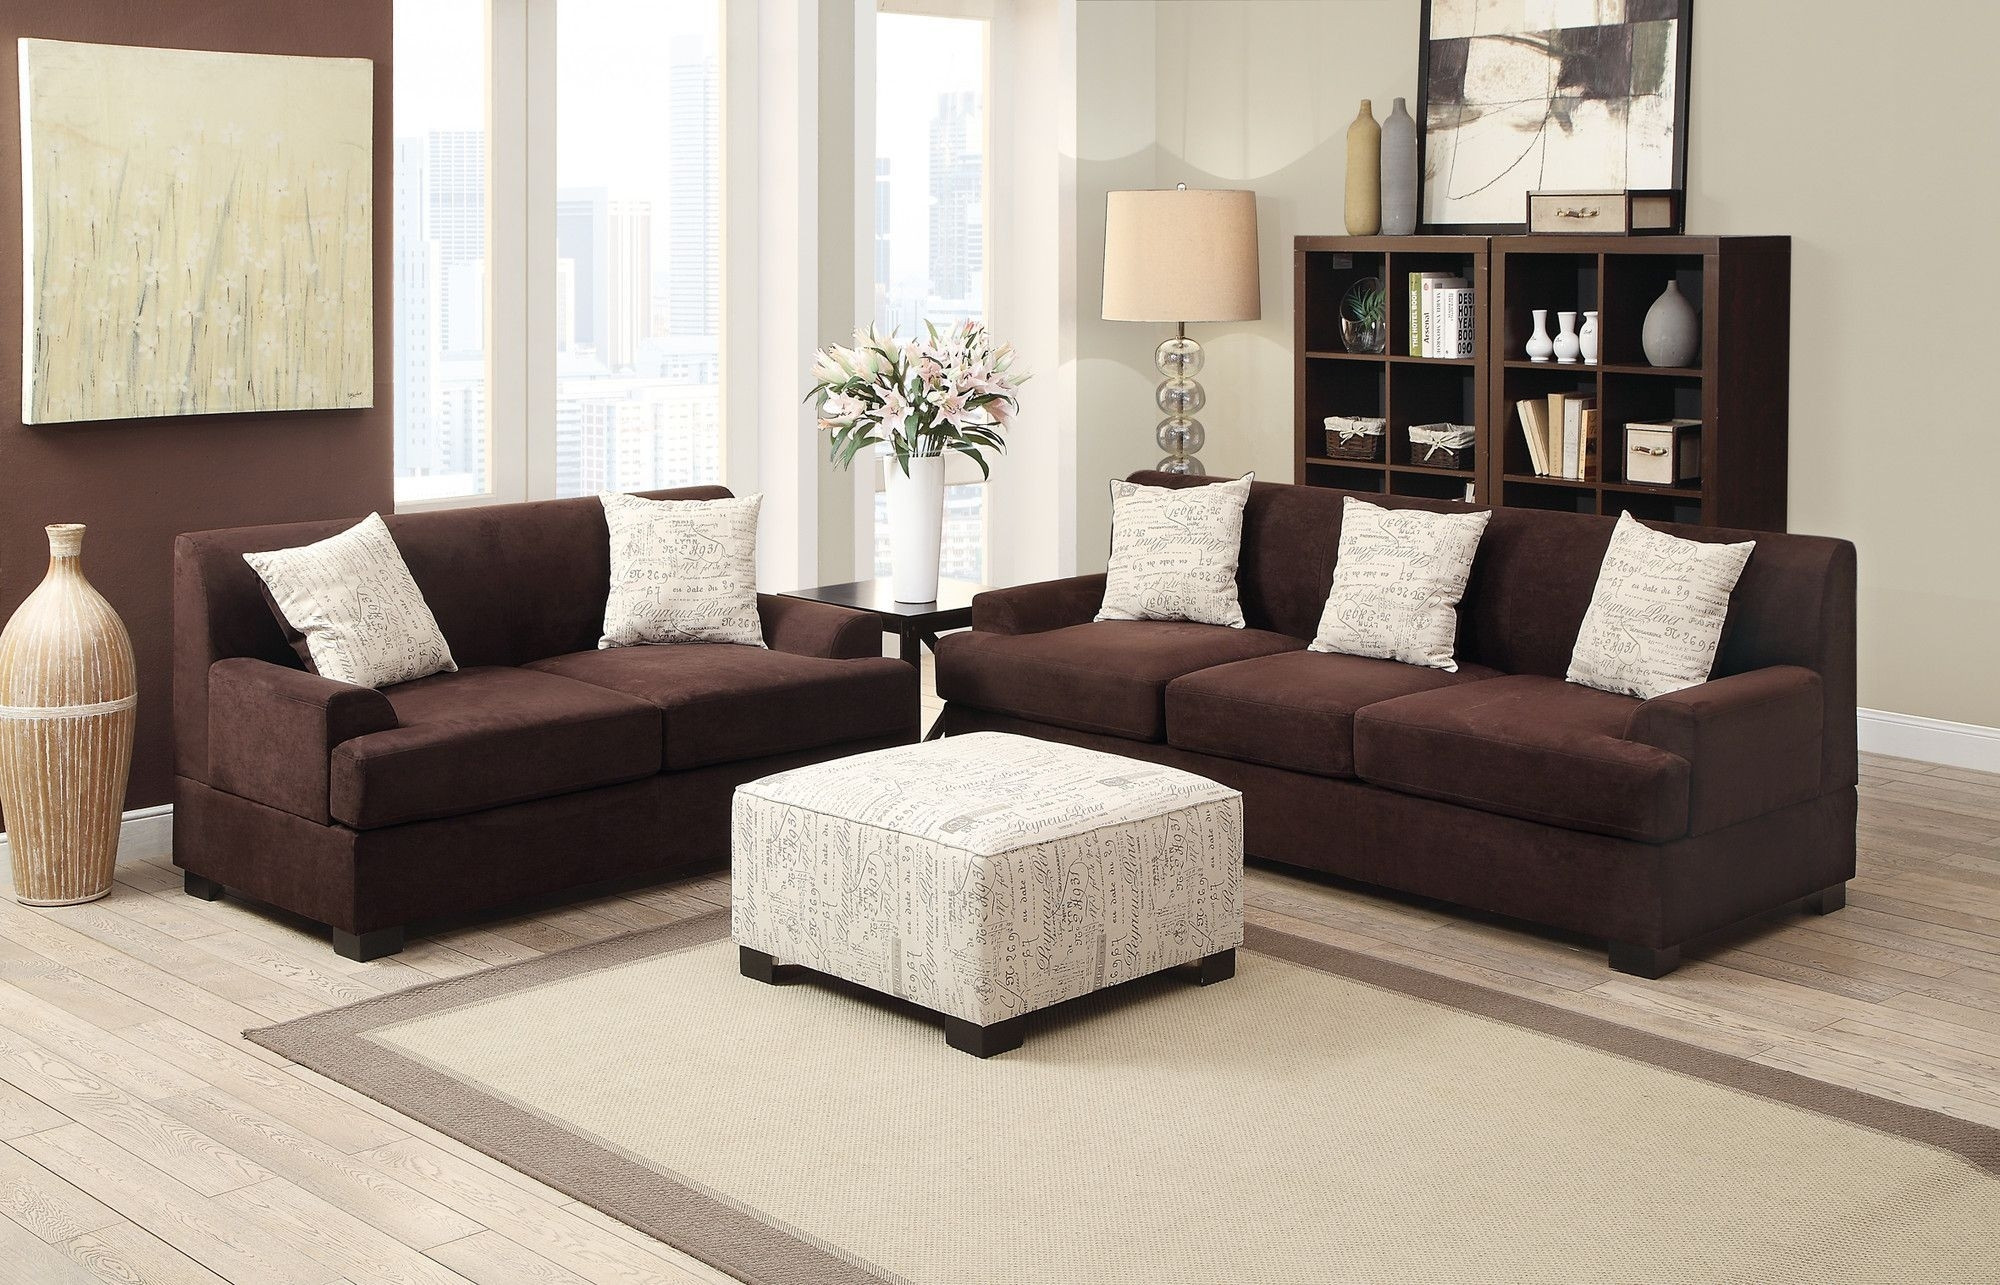 Bobkona Barrie Sofa And Loveseat Set | Products | Pinterest | Products With Regard To Sectional Sofas At Barrie (View 4 of 10)